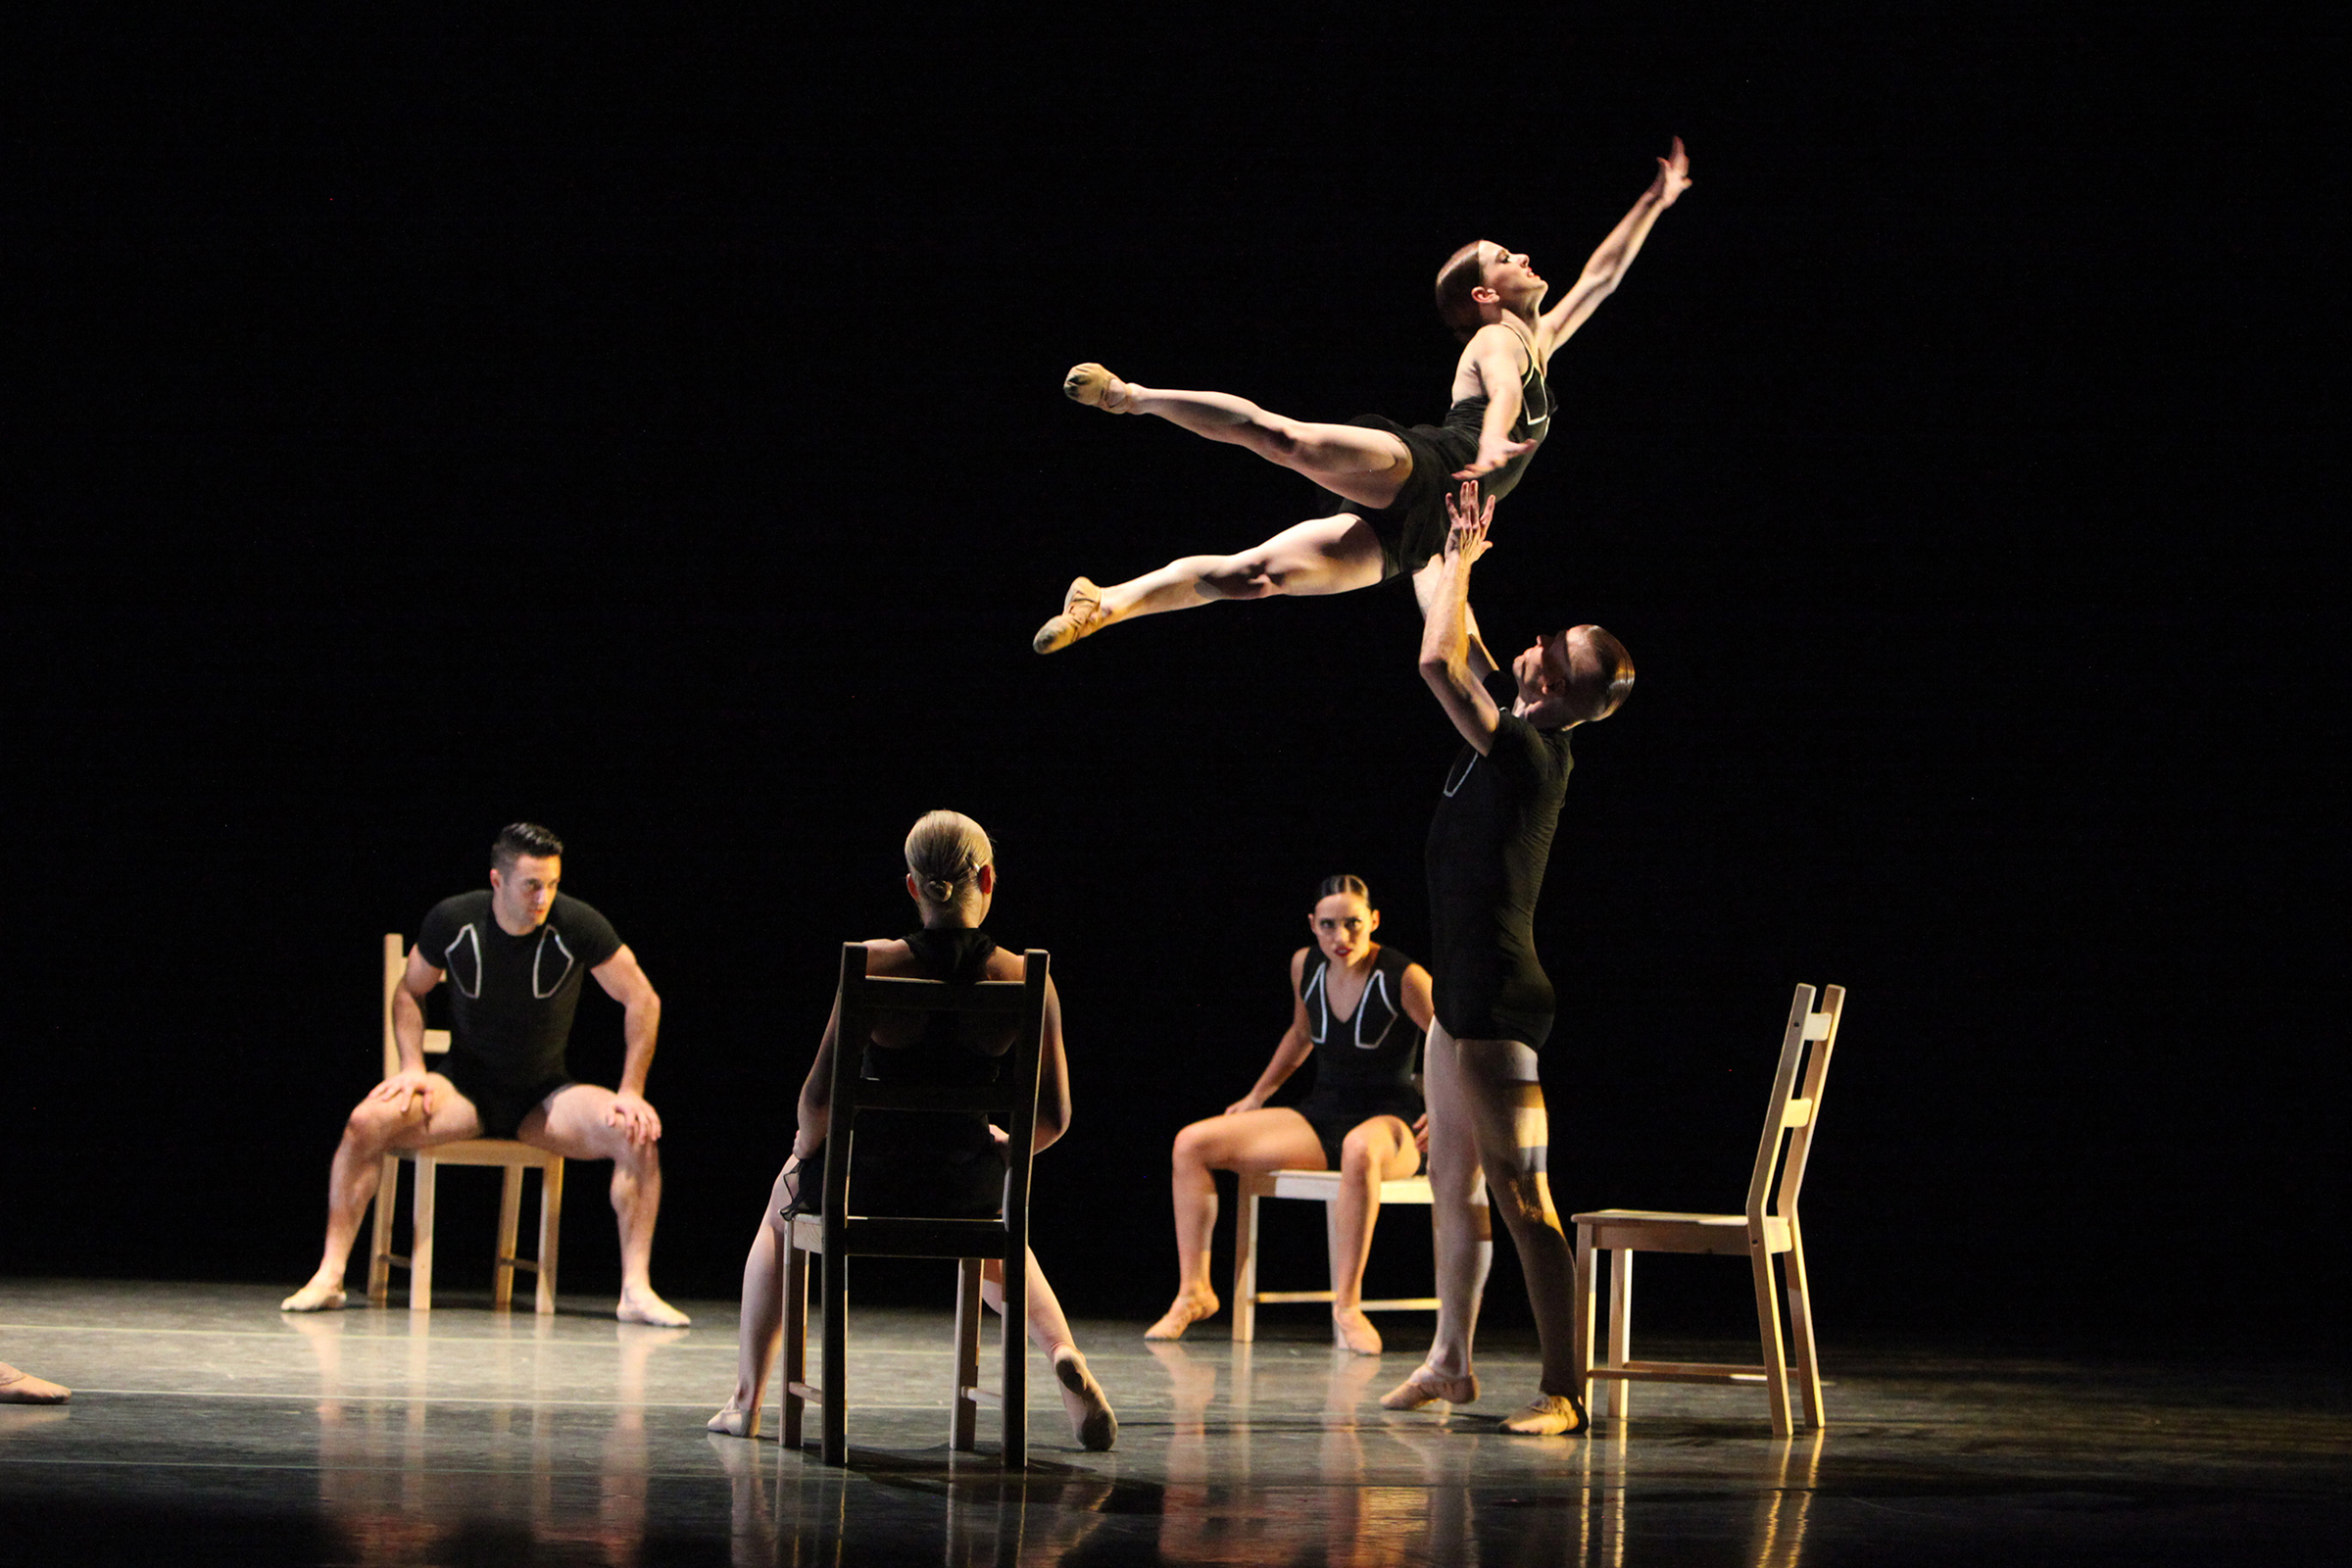 Members Giordano Dance Chicago performing on stage, with one man lifting a woman over his head